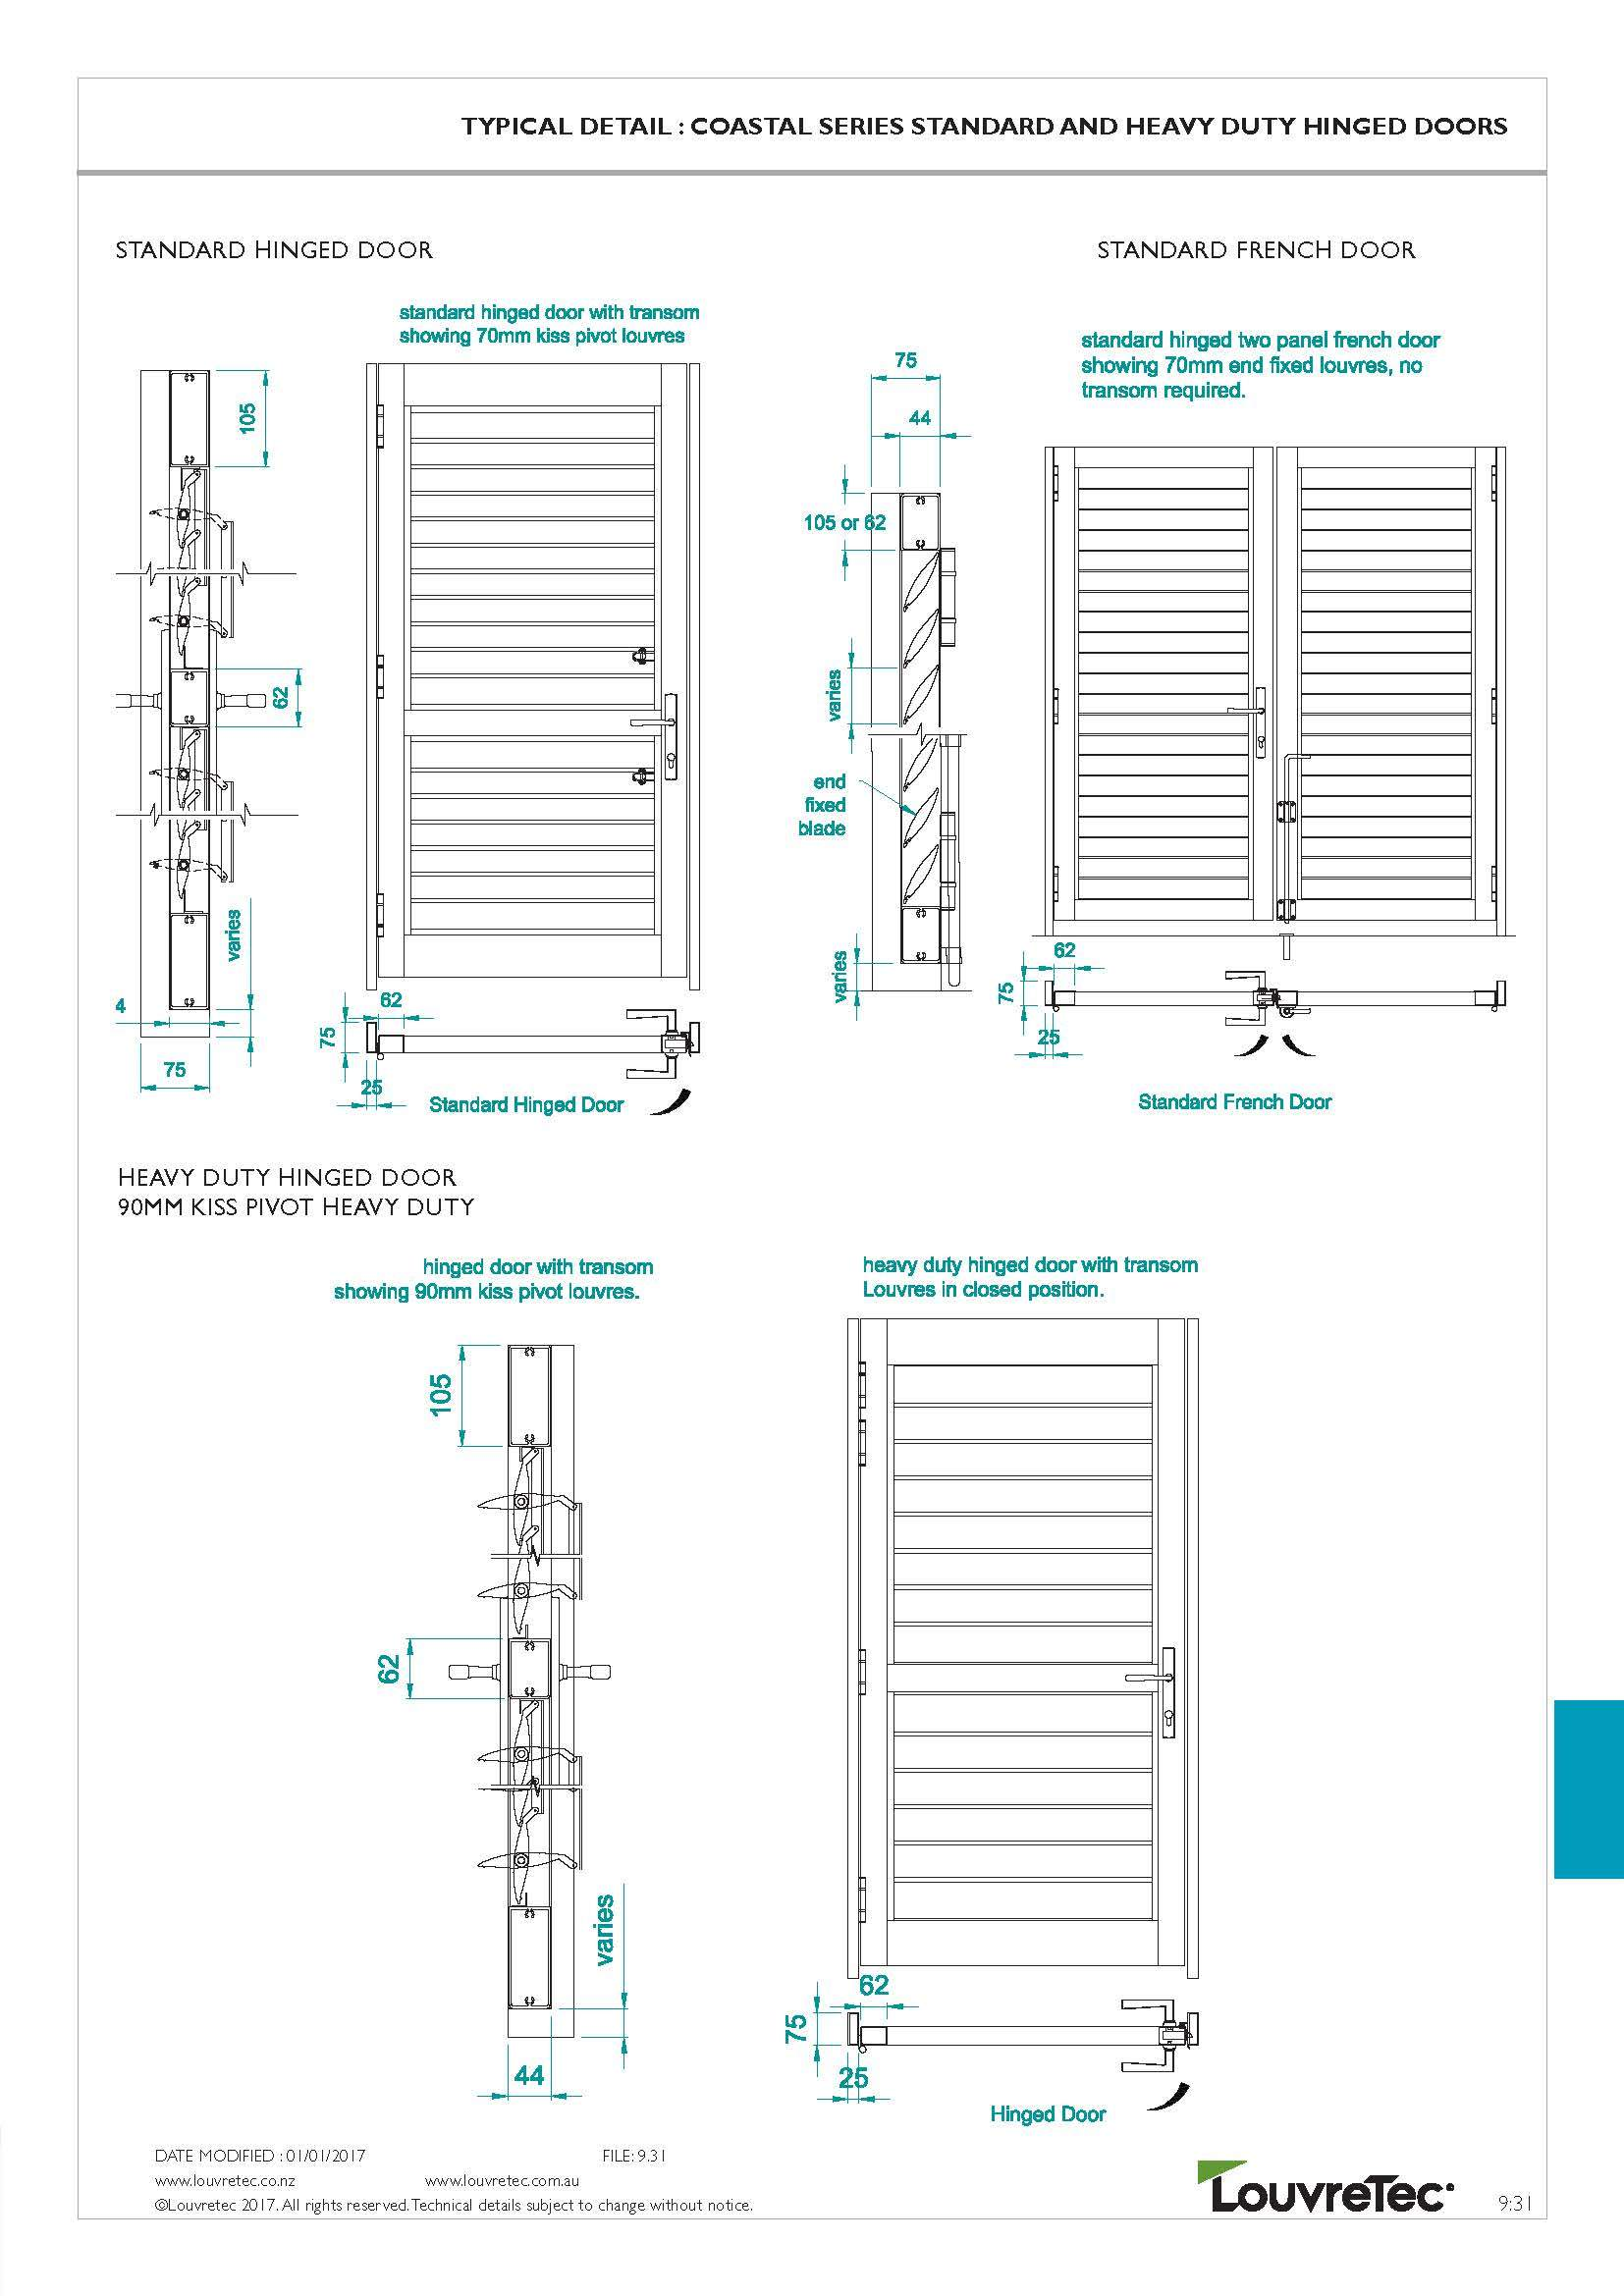 Standard & Heavy Duty Hinged Doors  9.31